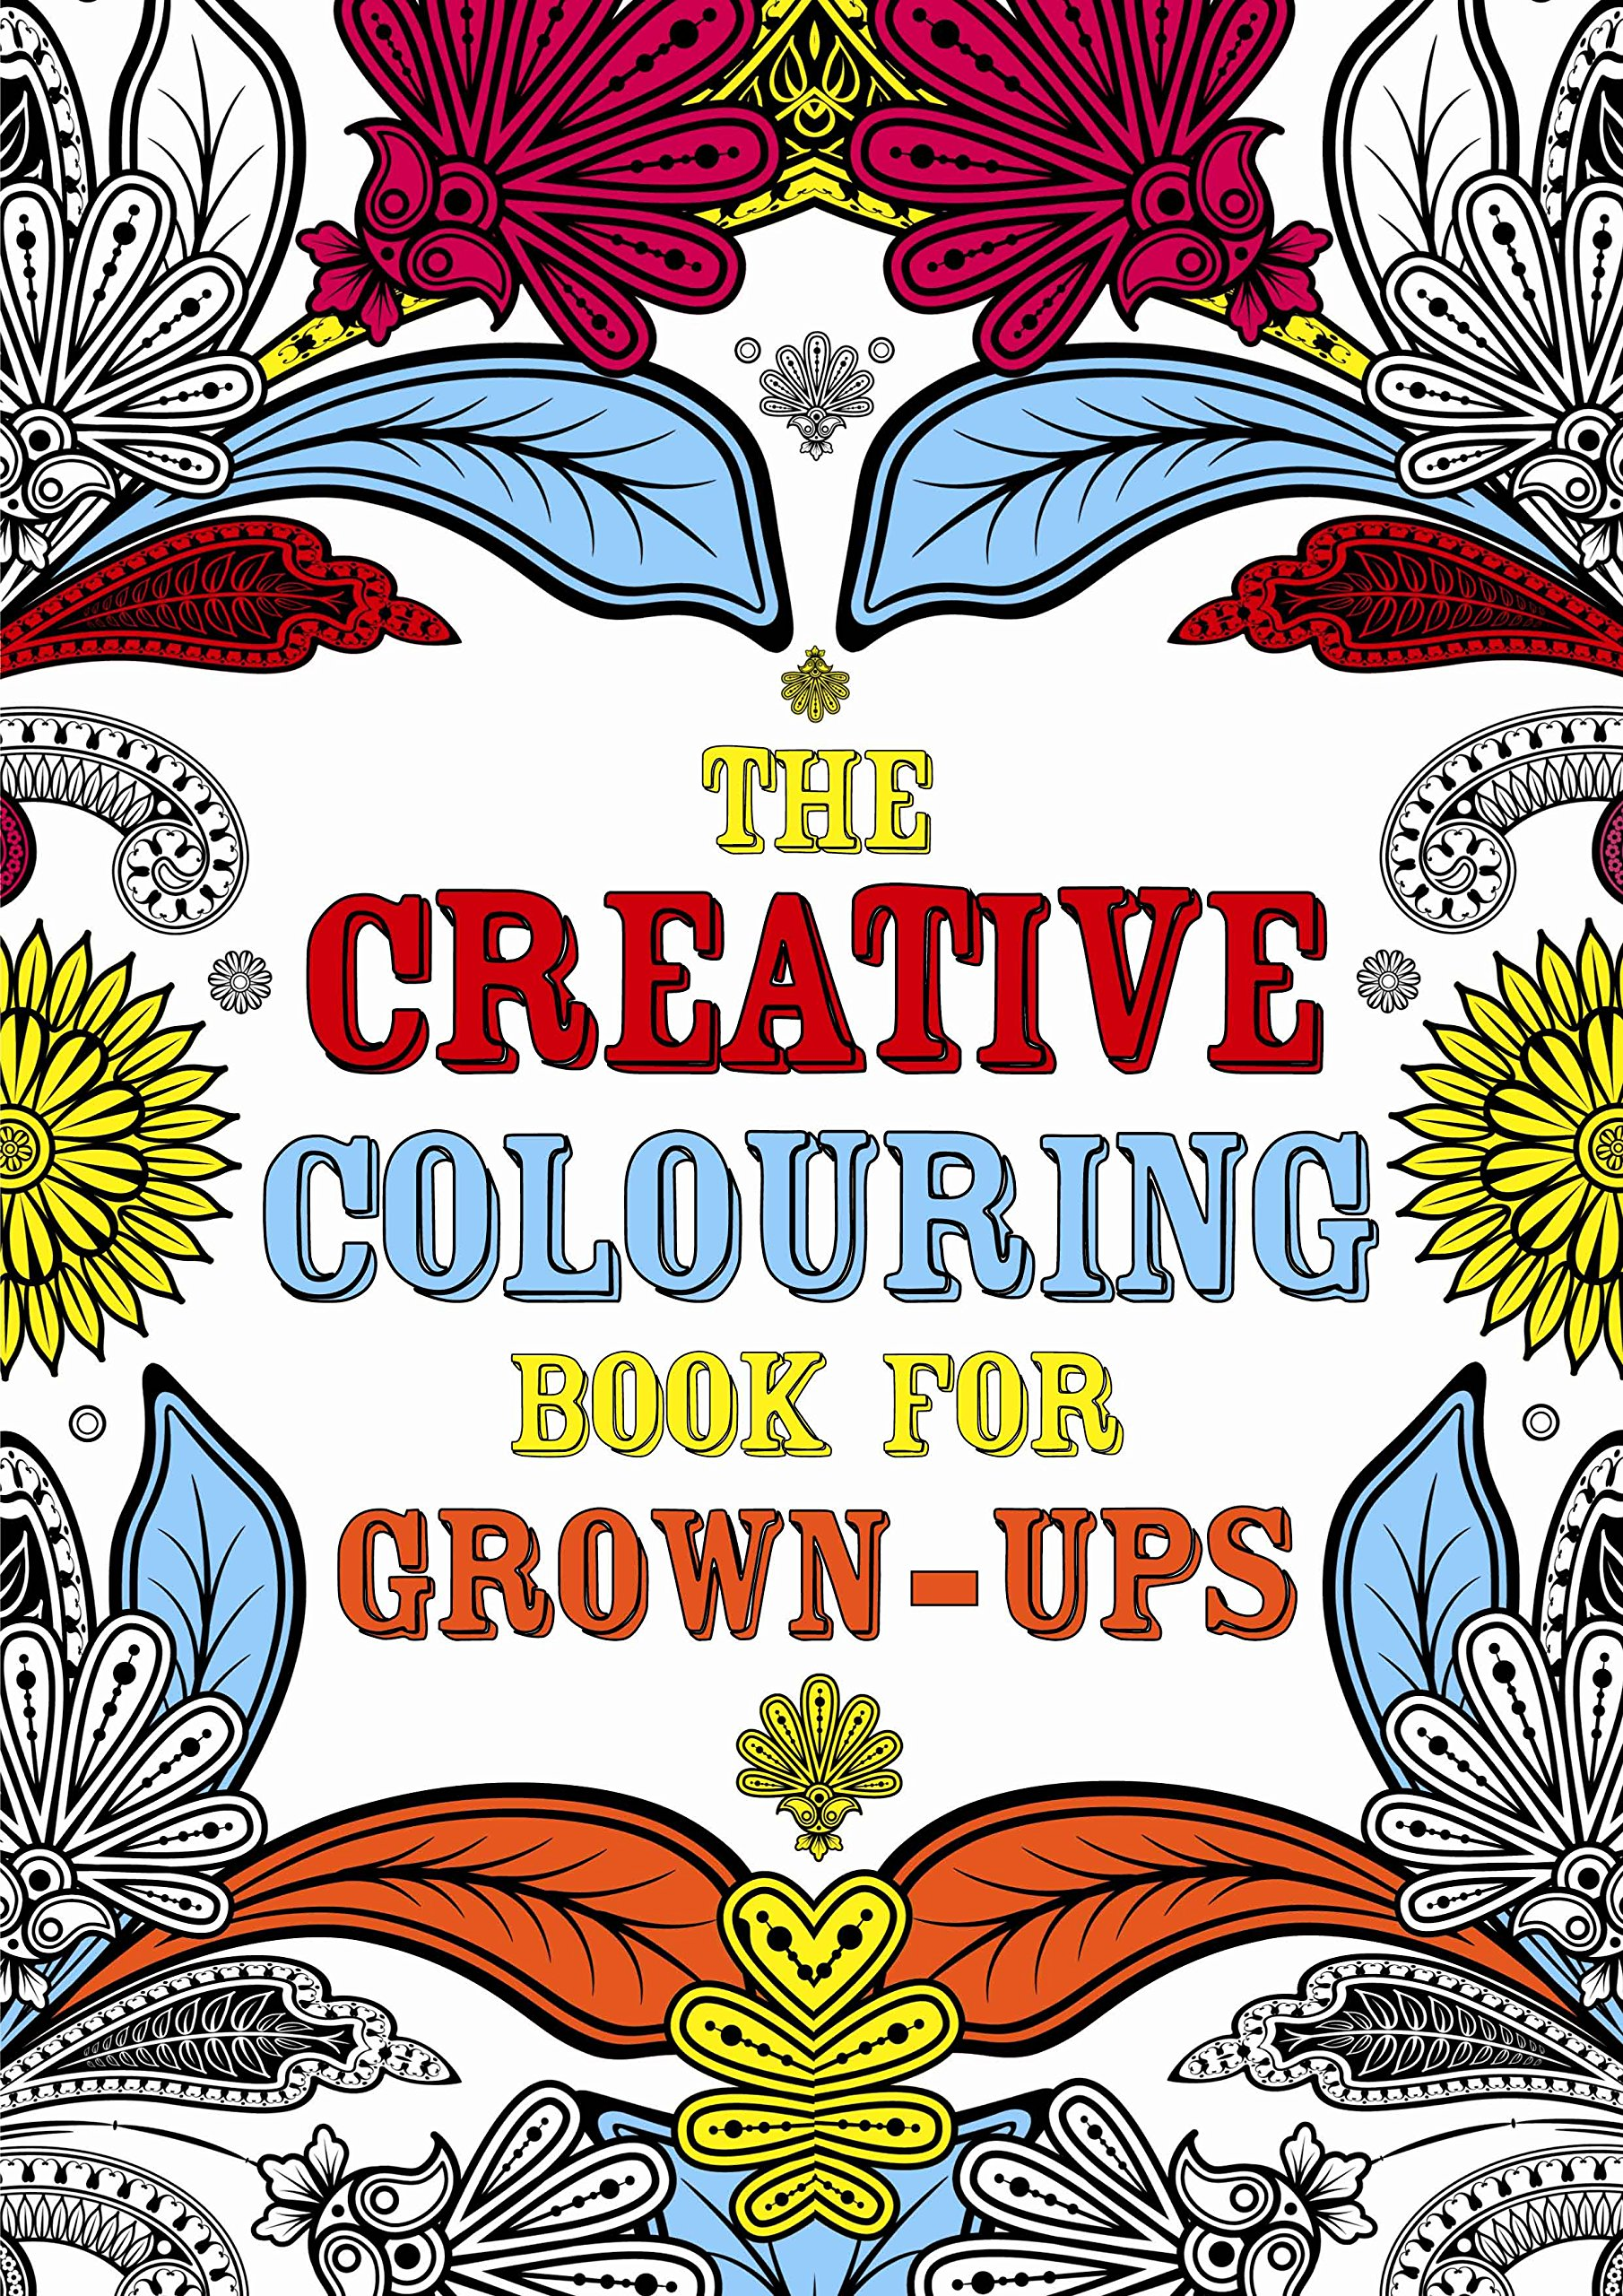 Amazon The Creative Colouring Book For Grown Ups 9781843178699 Michael OMara Books